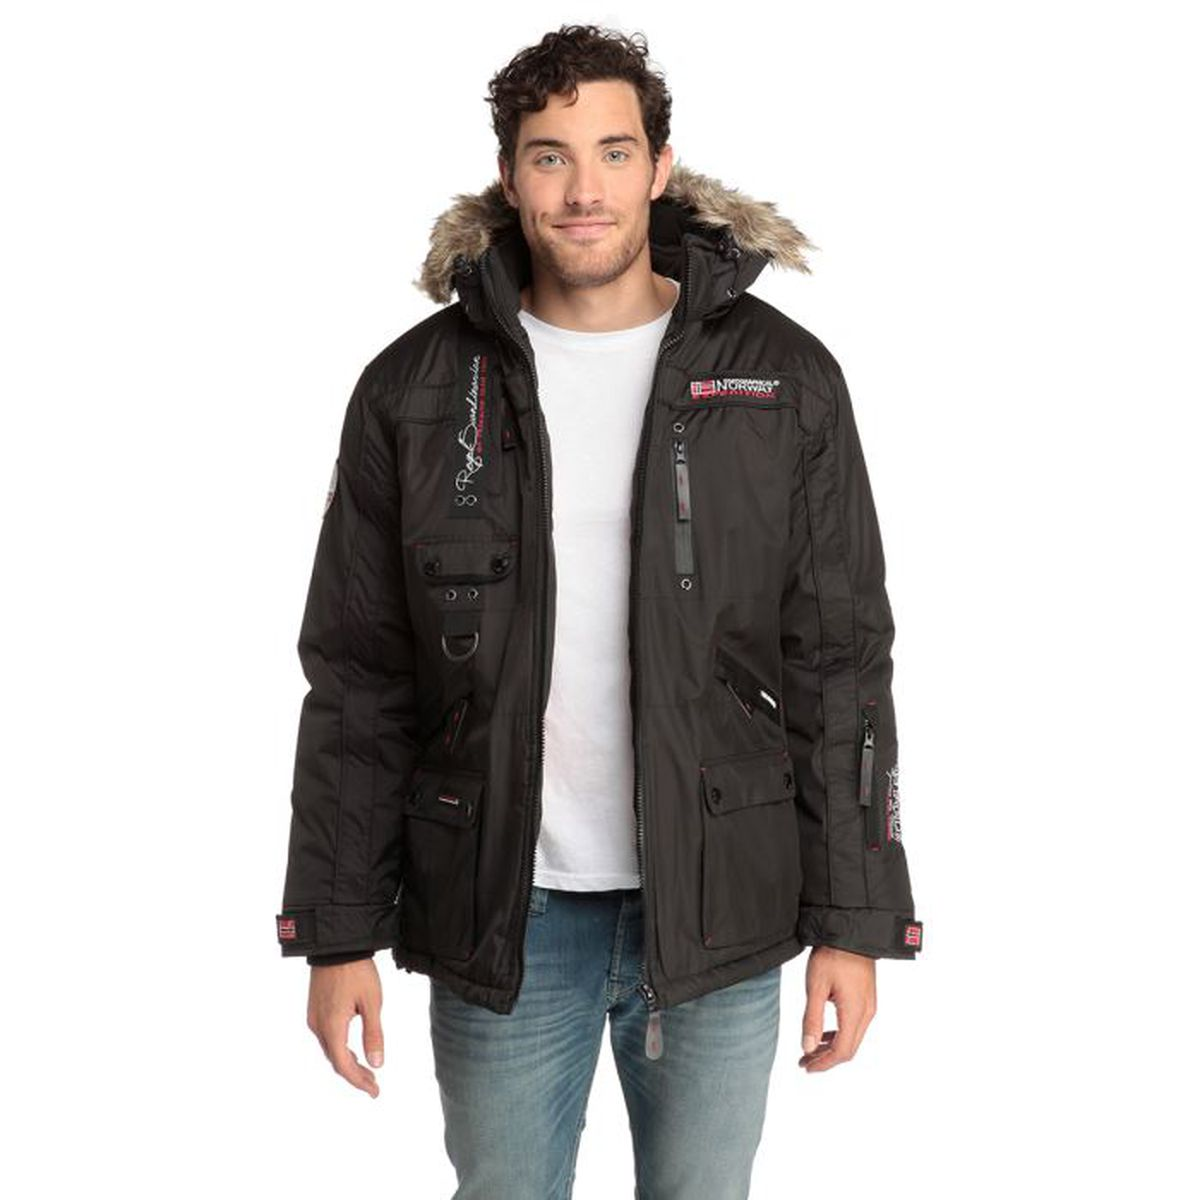 Noir Homme Vente Blouson Achat Geographical Norway qYvxw4